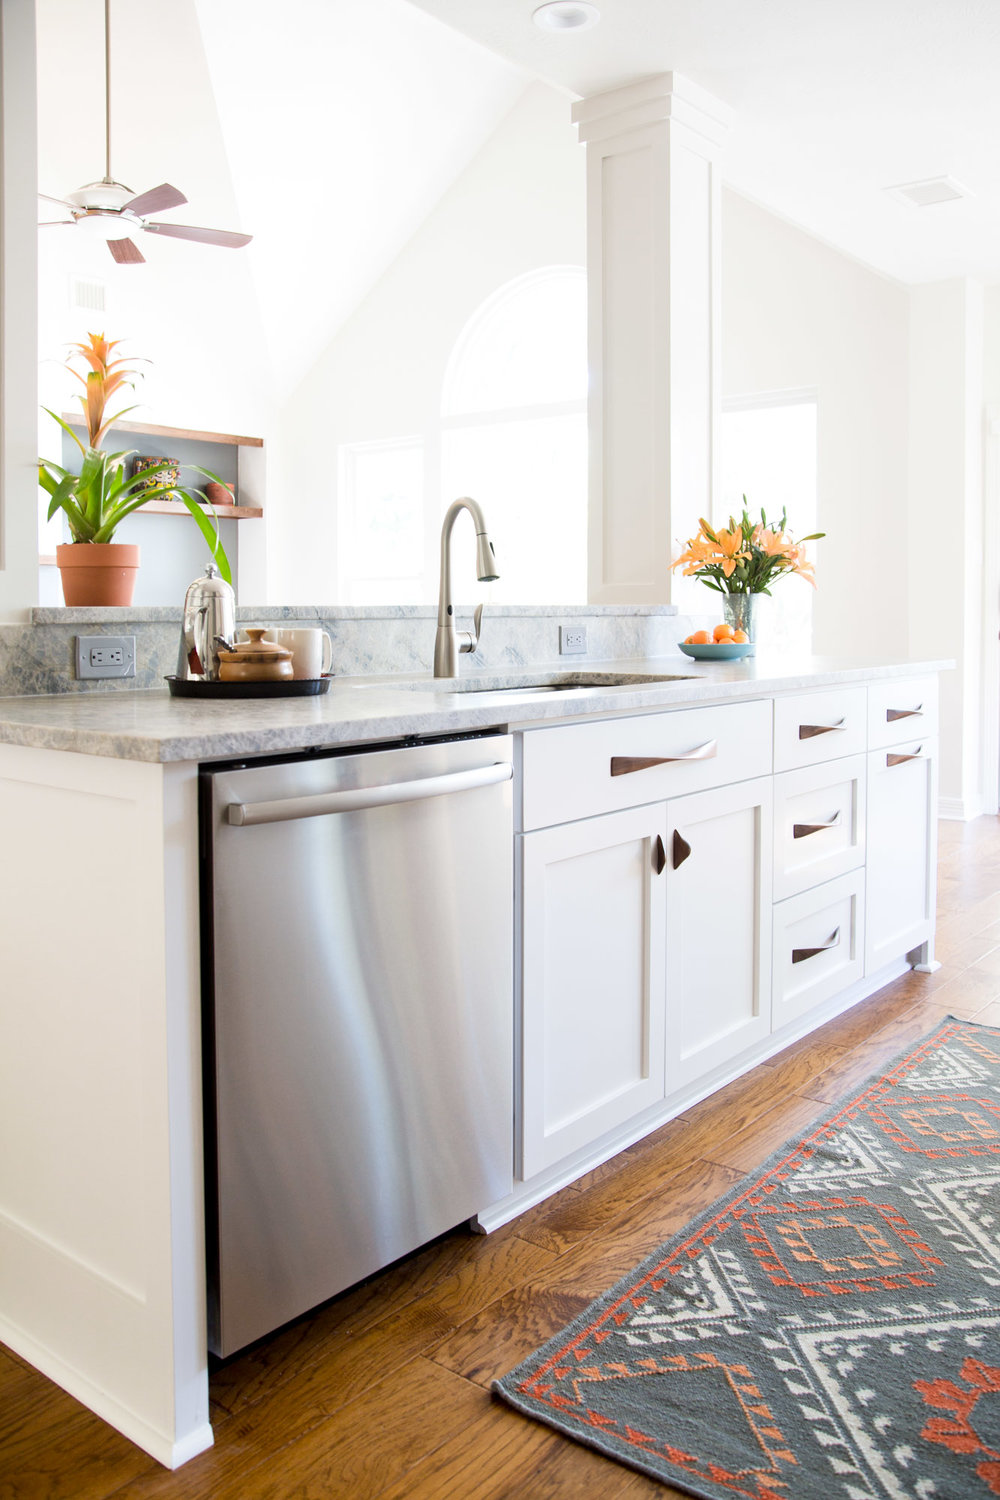 Simple White Kitchen Remodel With Quartzite Countertops, Wood  Floors,u0026nbsp;and Wood Cabinet